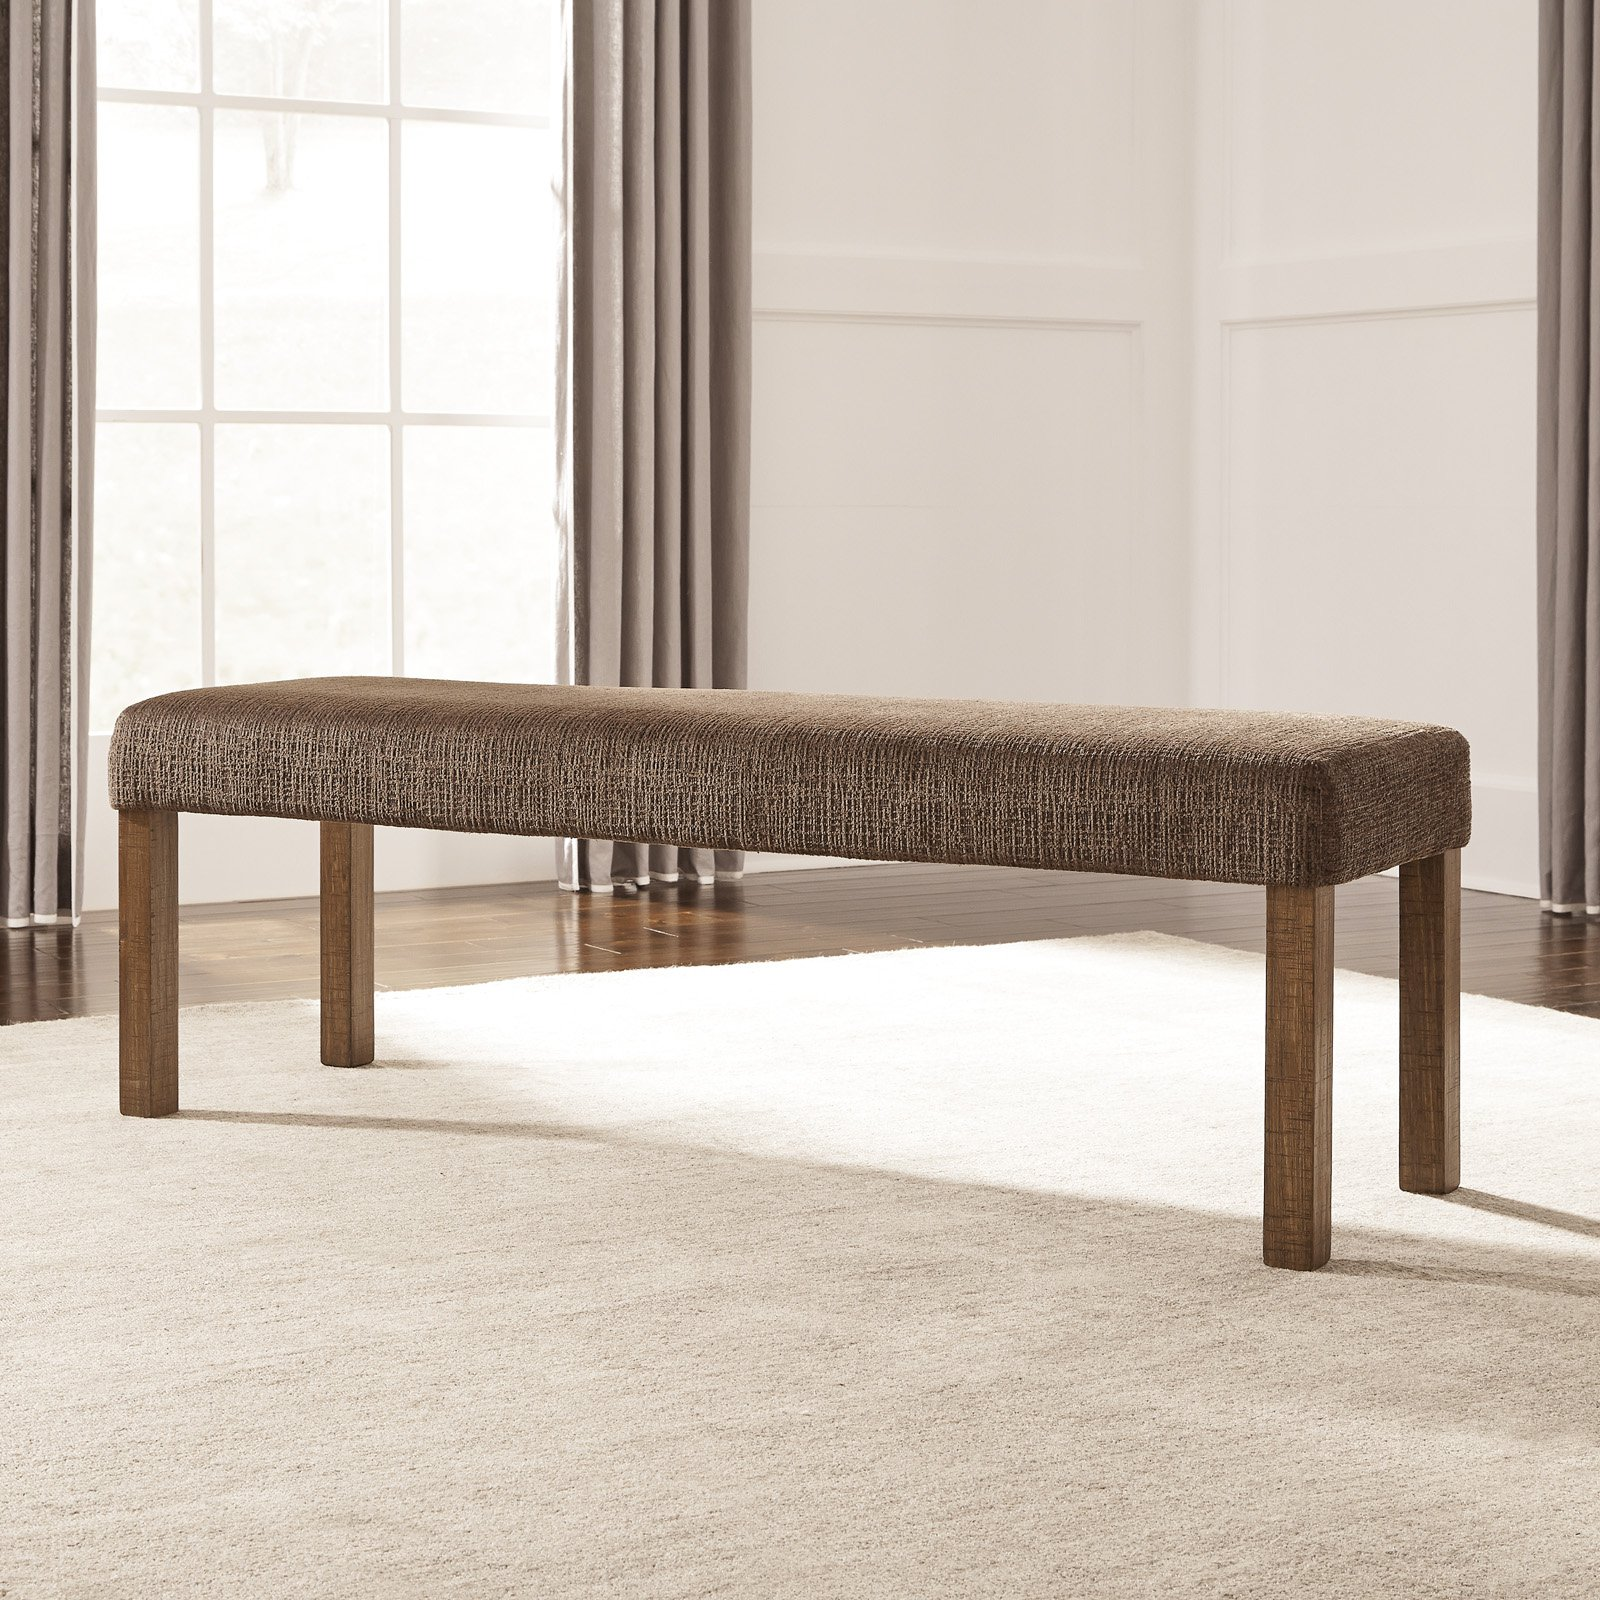 Signature Design By Ashley Tamilo Upholstered Dining Bench